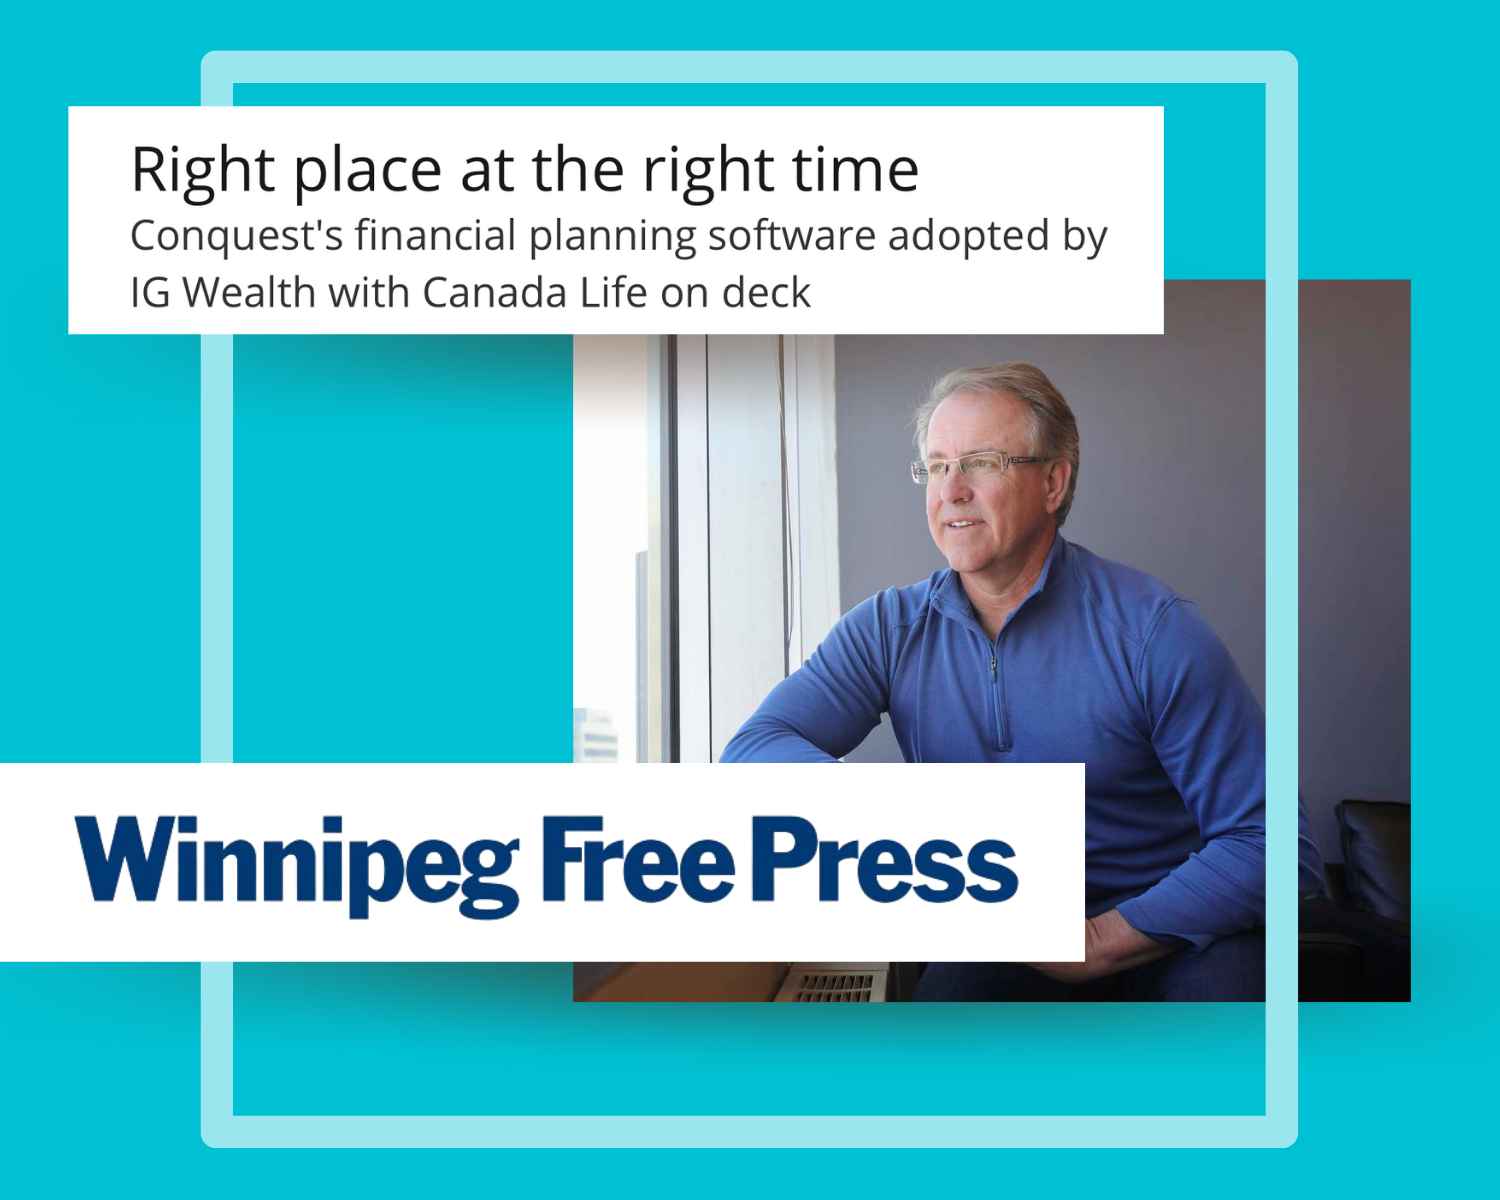 Winnipeg Free Press Article: Right Place at the Right Time